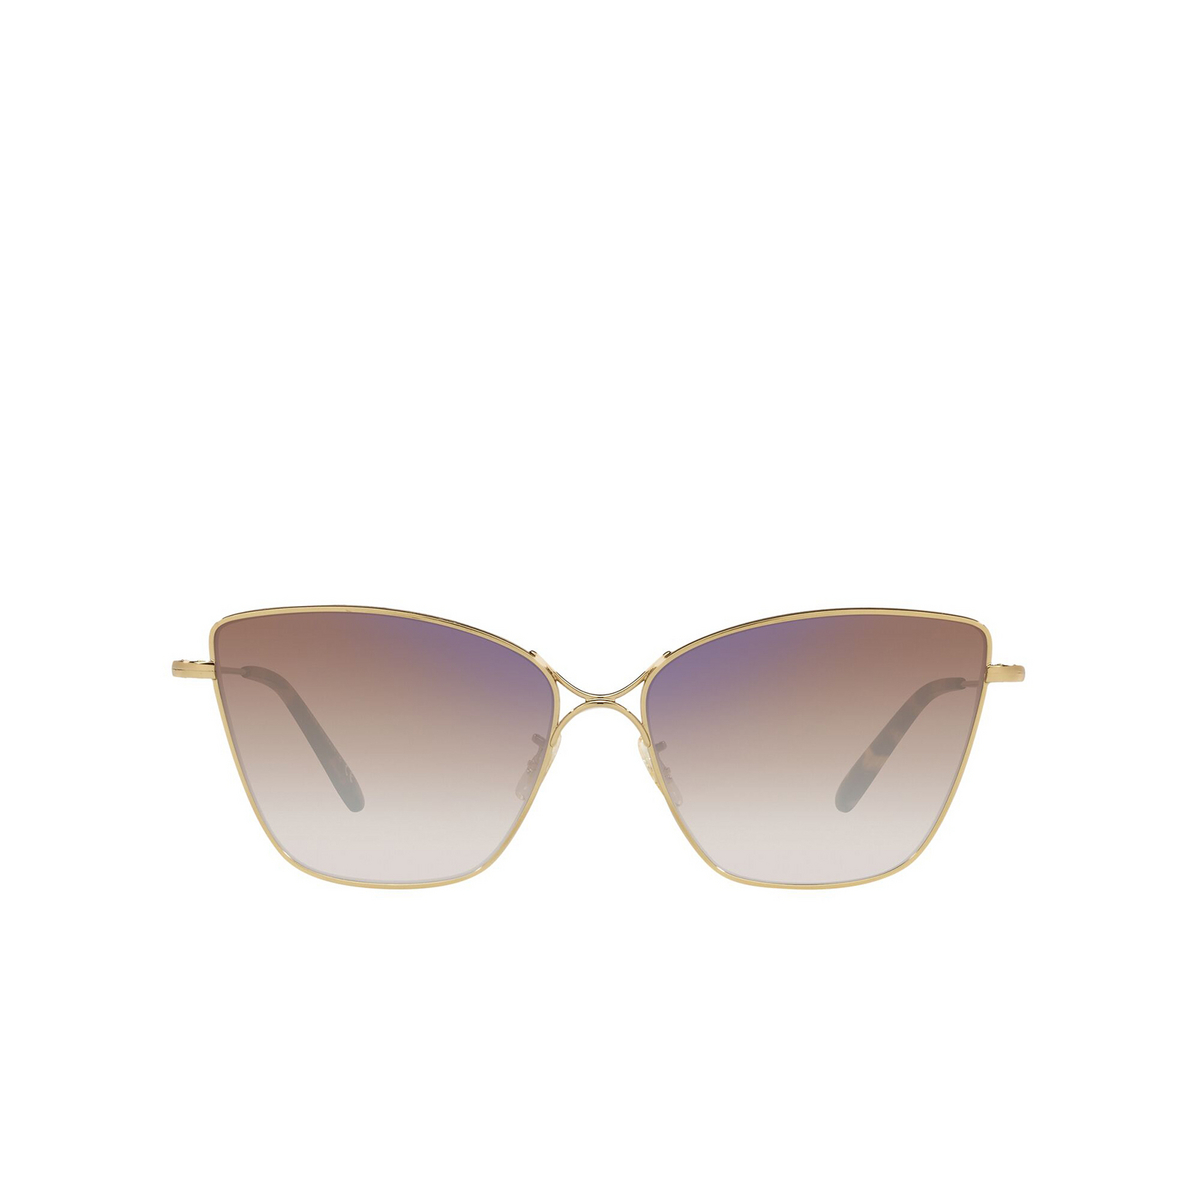 Oliver Peoples® Butterfly Sunglasses: Marlyse OV1288S color Gold 5145K3 - front view.